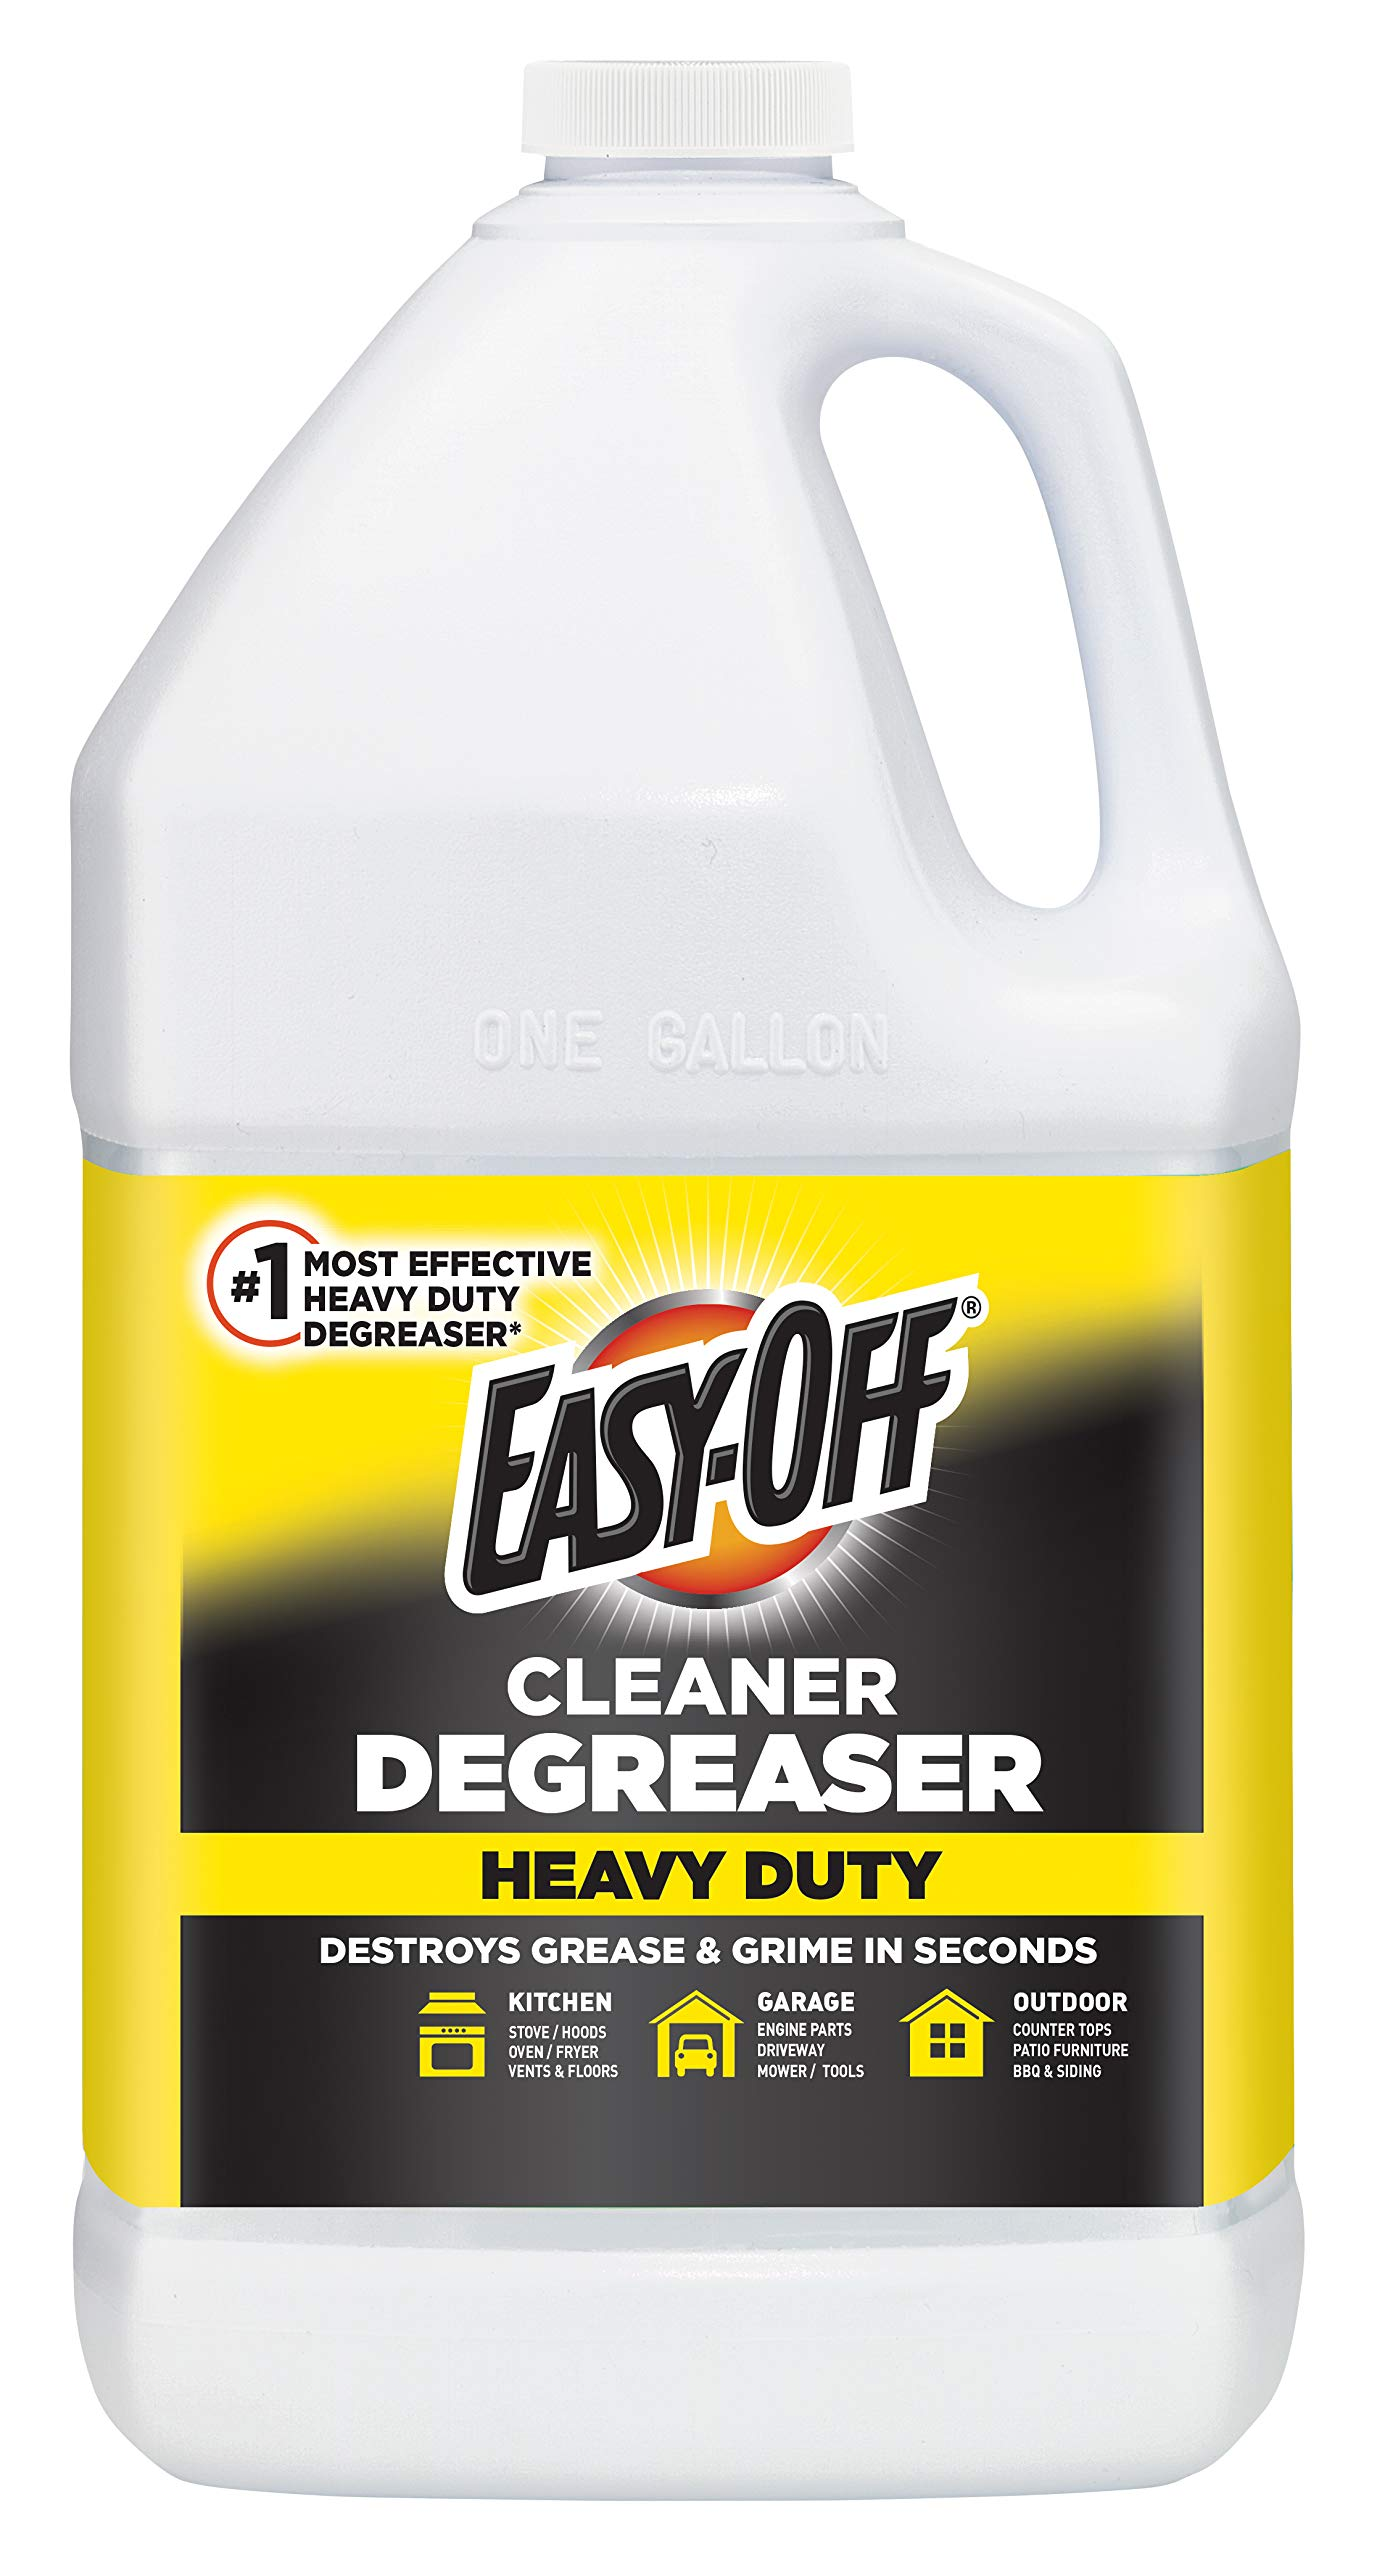 Easy Off Heavy Duty Degreaser-Cleaner, 128 Ounce by Easy Off